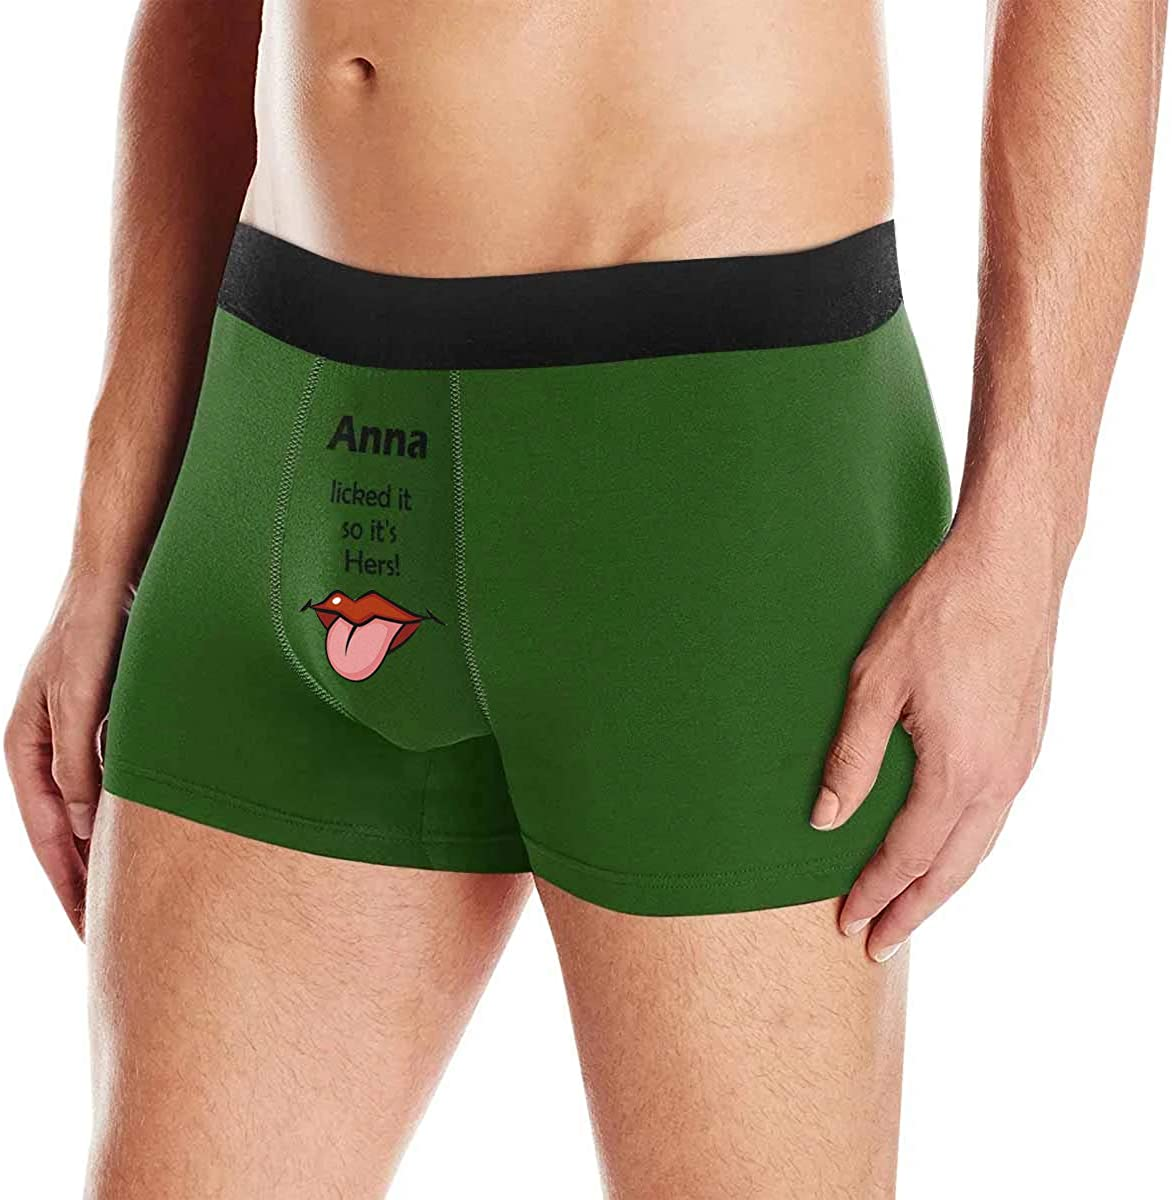 Custom Boxer Briefs for Men,Custom Her Name Briefs with Printing Mouth and Tongue,Lick with Tongue,She Liked It So Its Hers